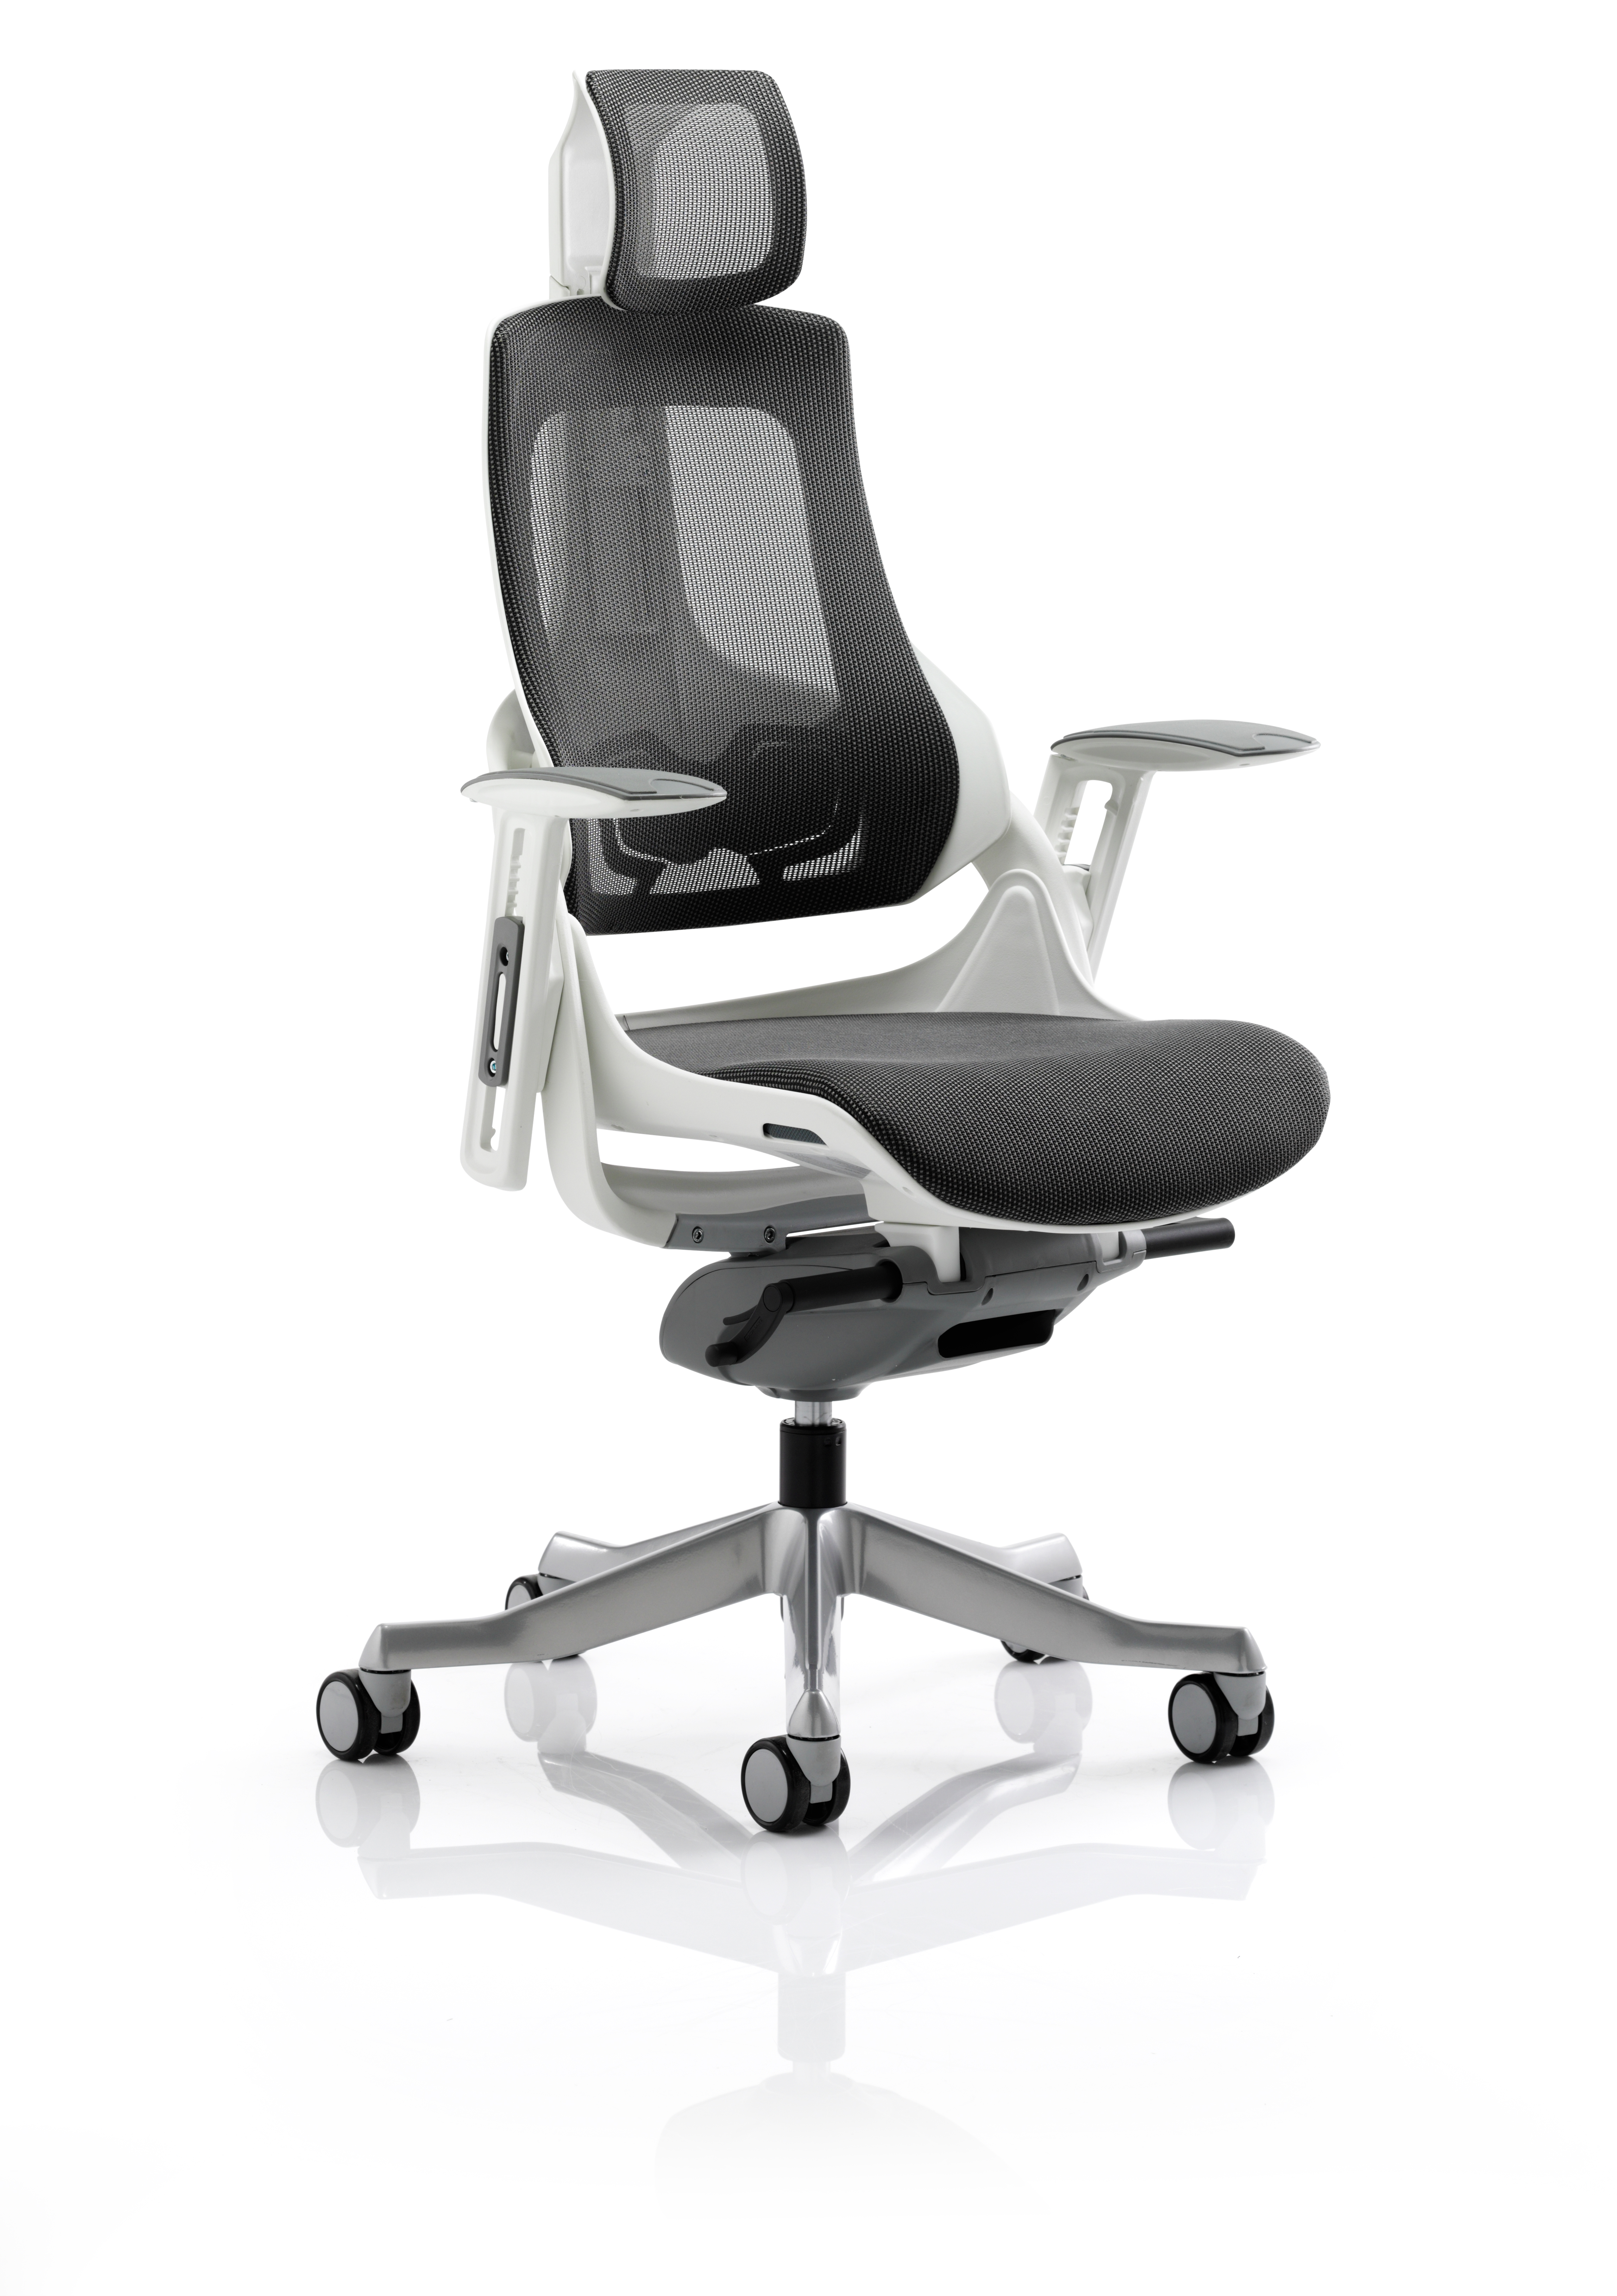 Executive Chairs Zure Charcoal Mesh With Arms With Headrest KC0162